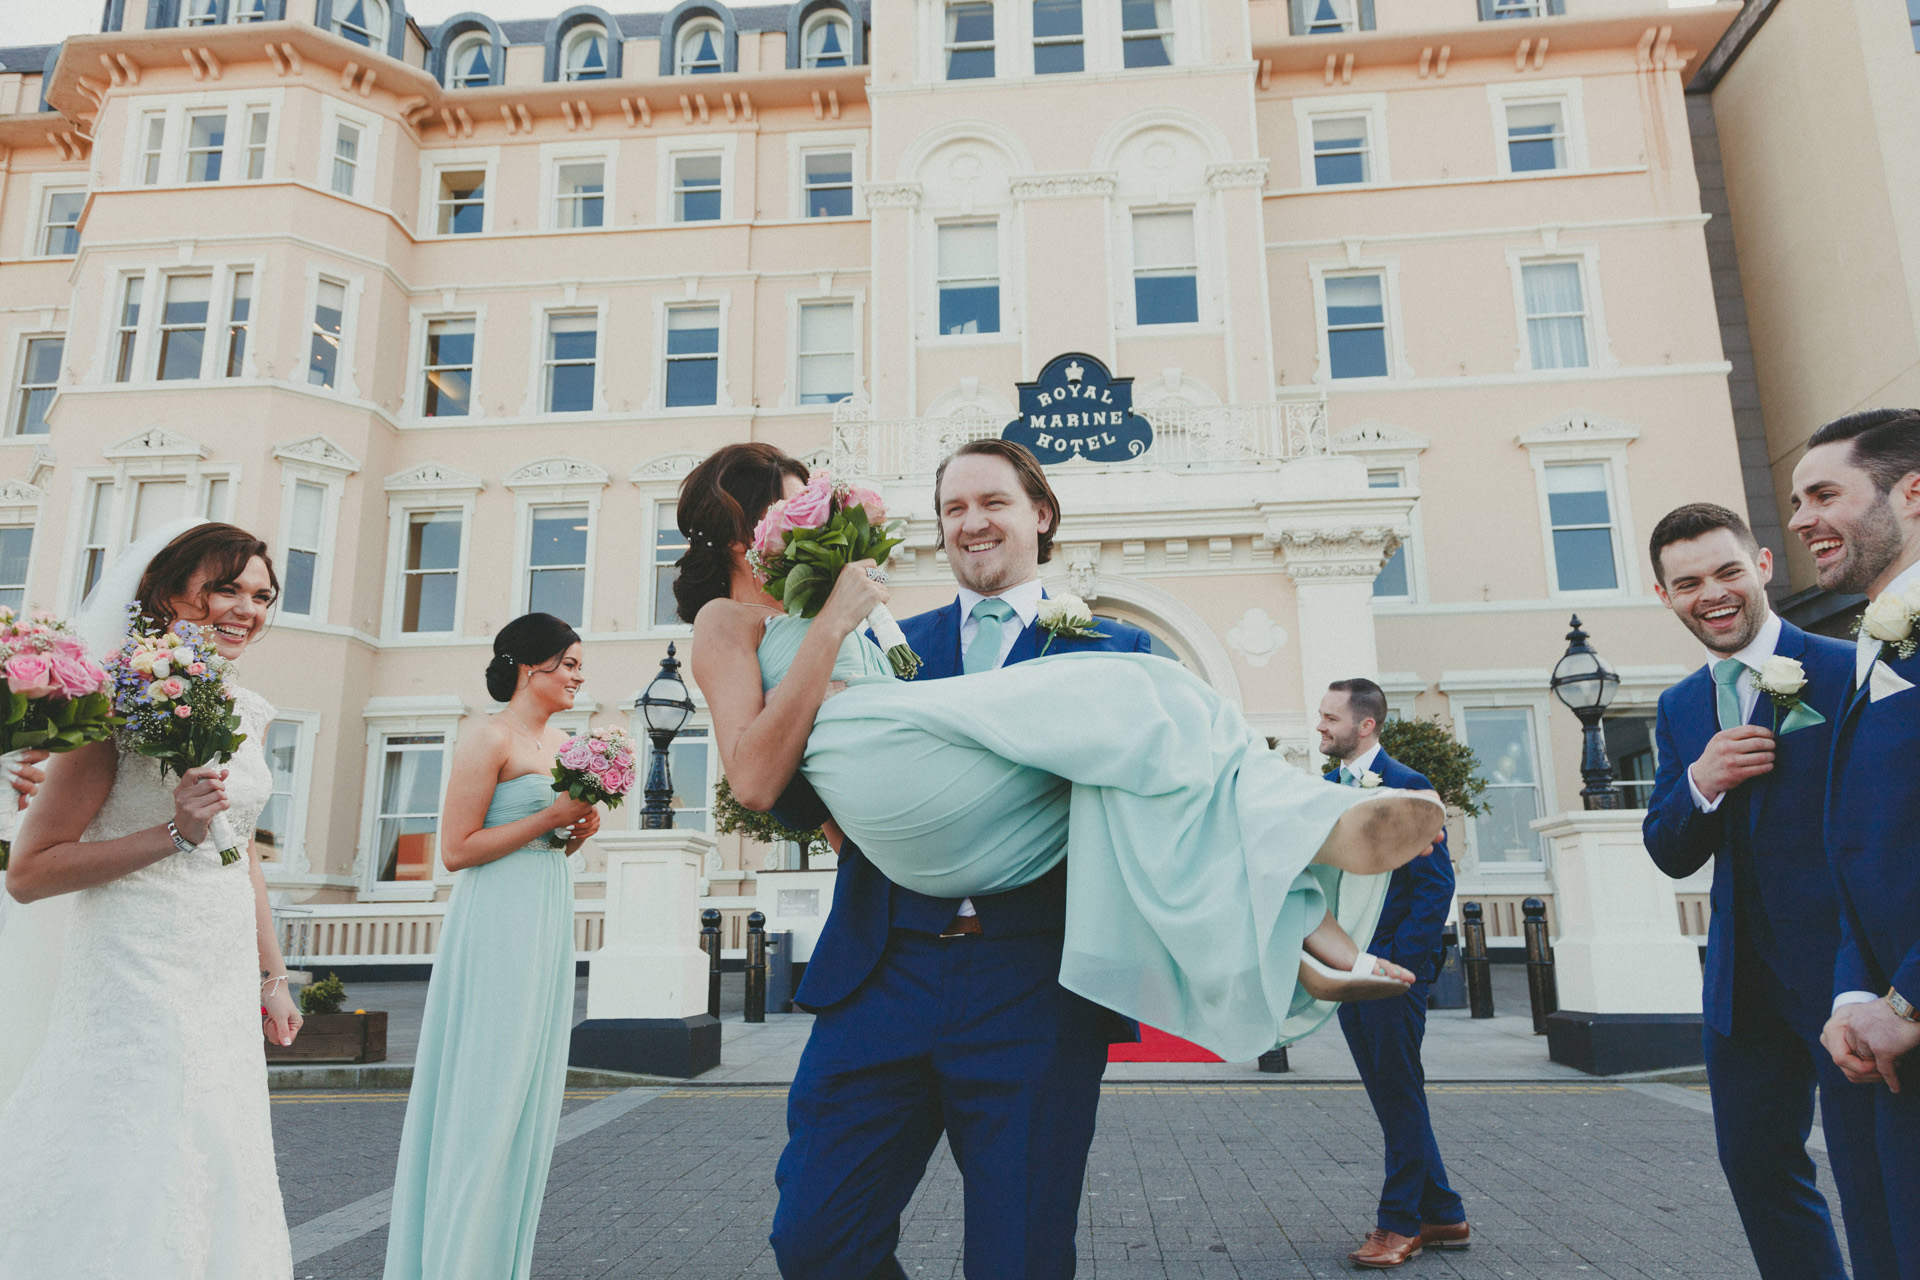 Royal-marine-hotel-wedding-photos10